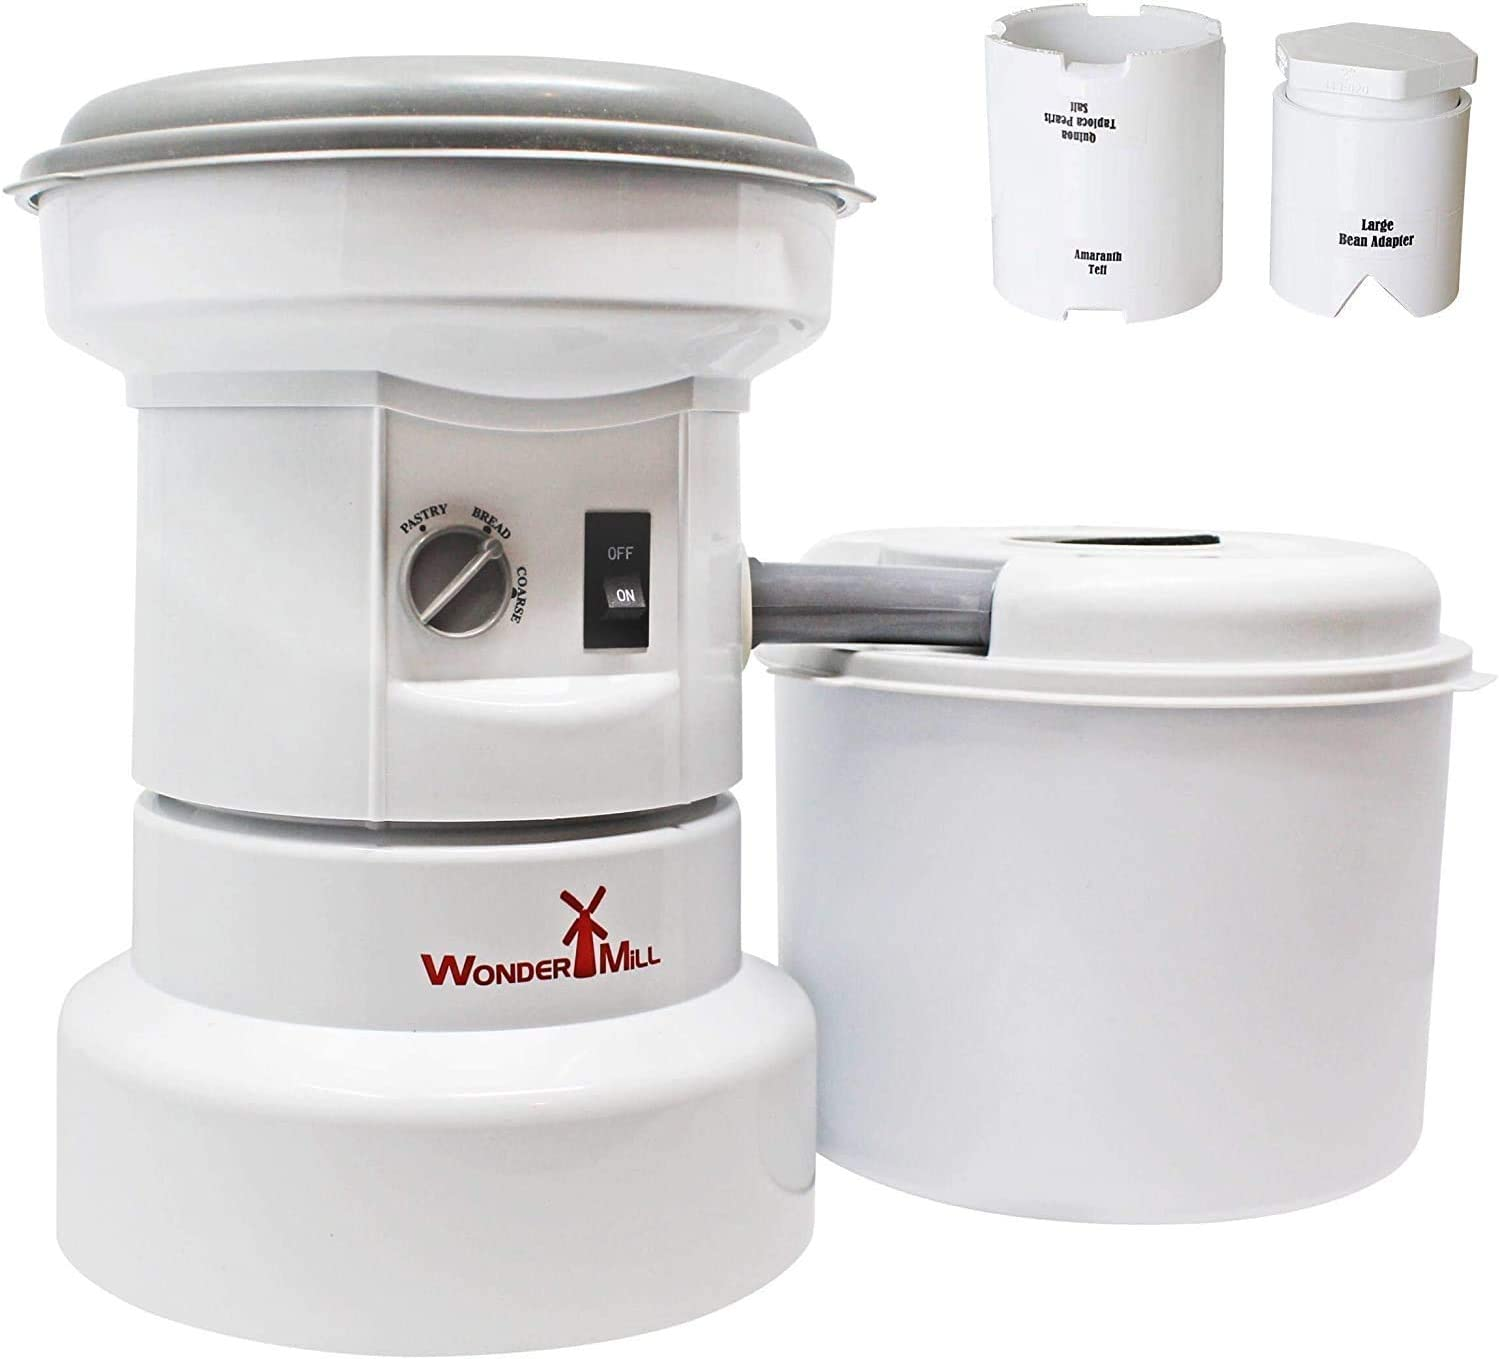 WONDERMILL - Bundle - Powerful Electric Grain Mill Grinder for Healthy Grains and Gluten-Free Flours with Small Grains and Bean Attachments Combo